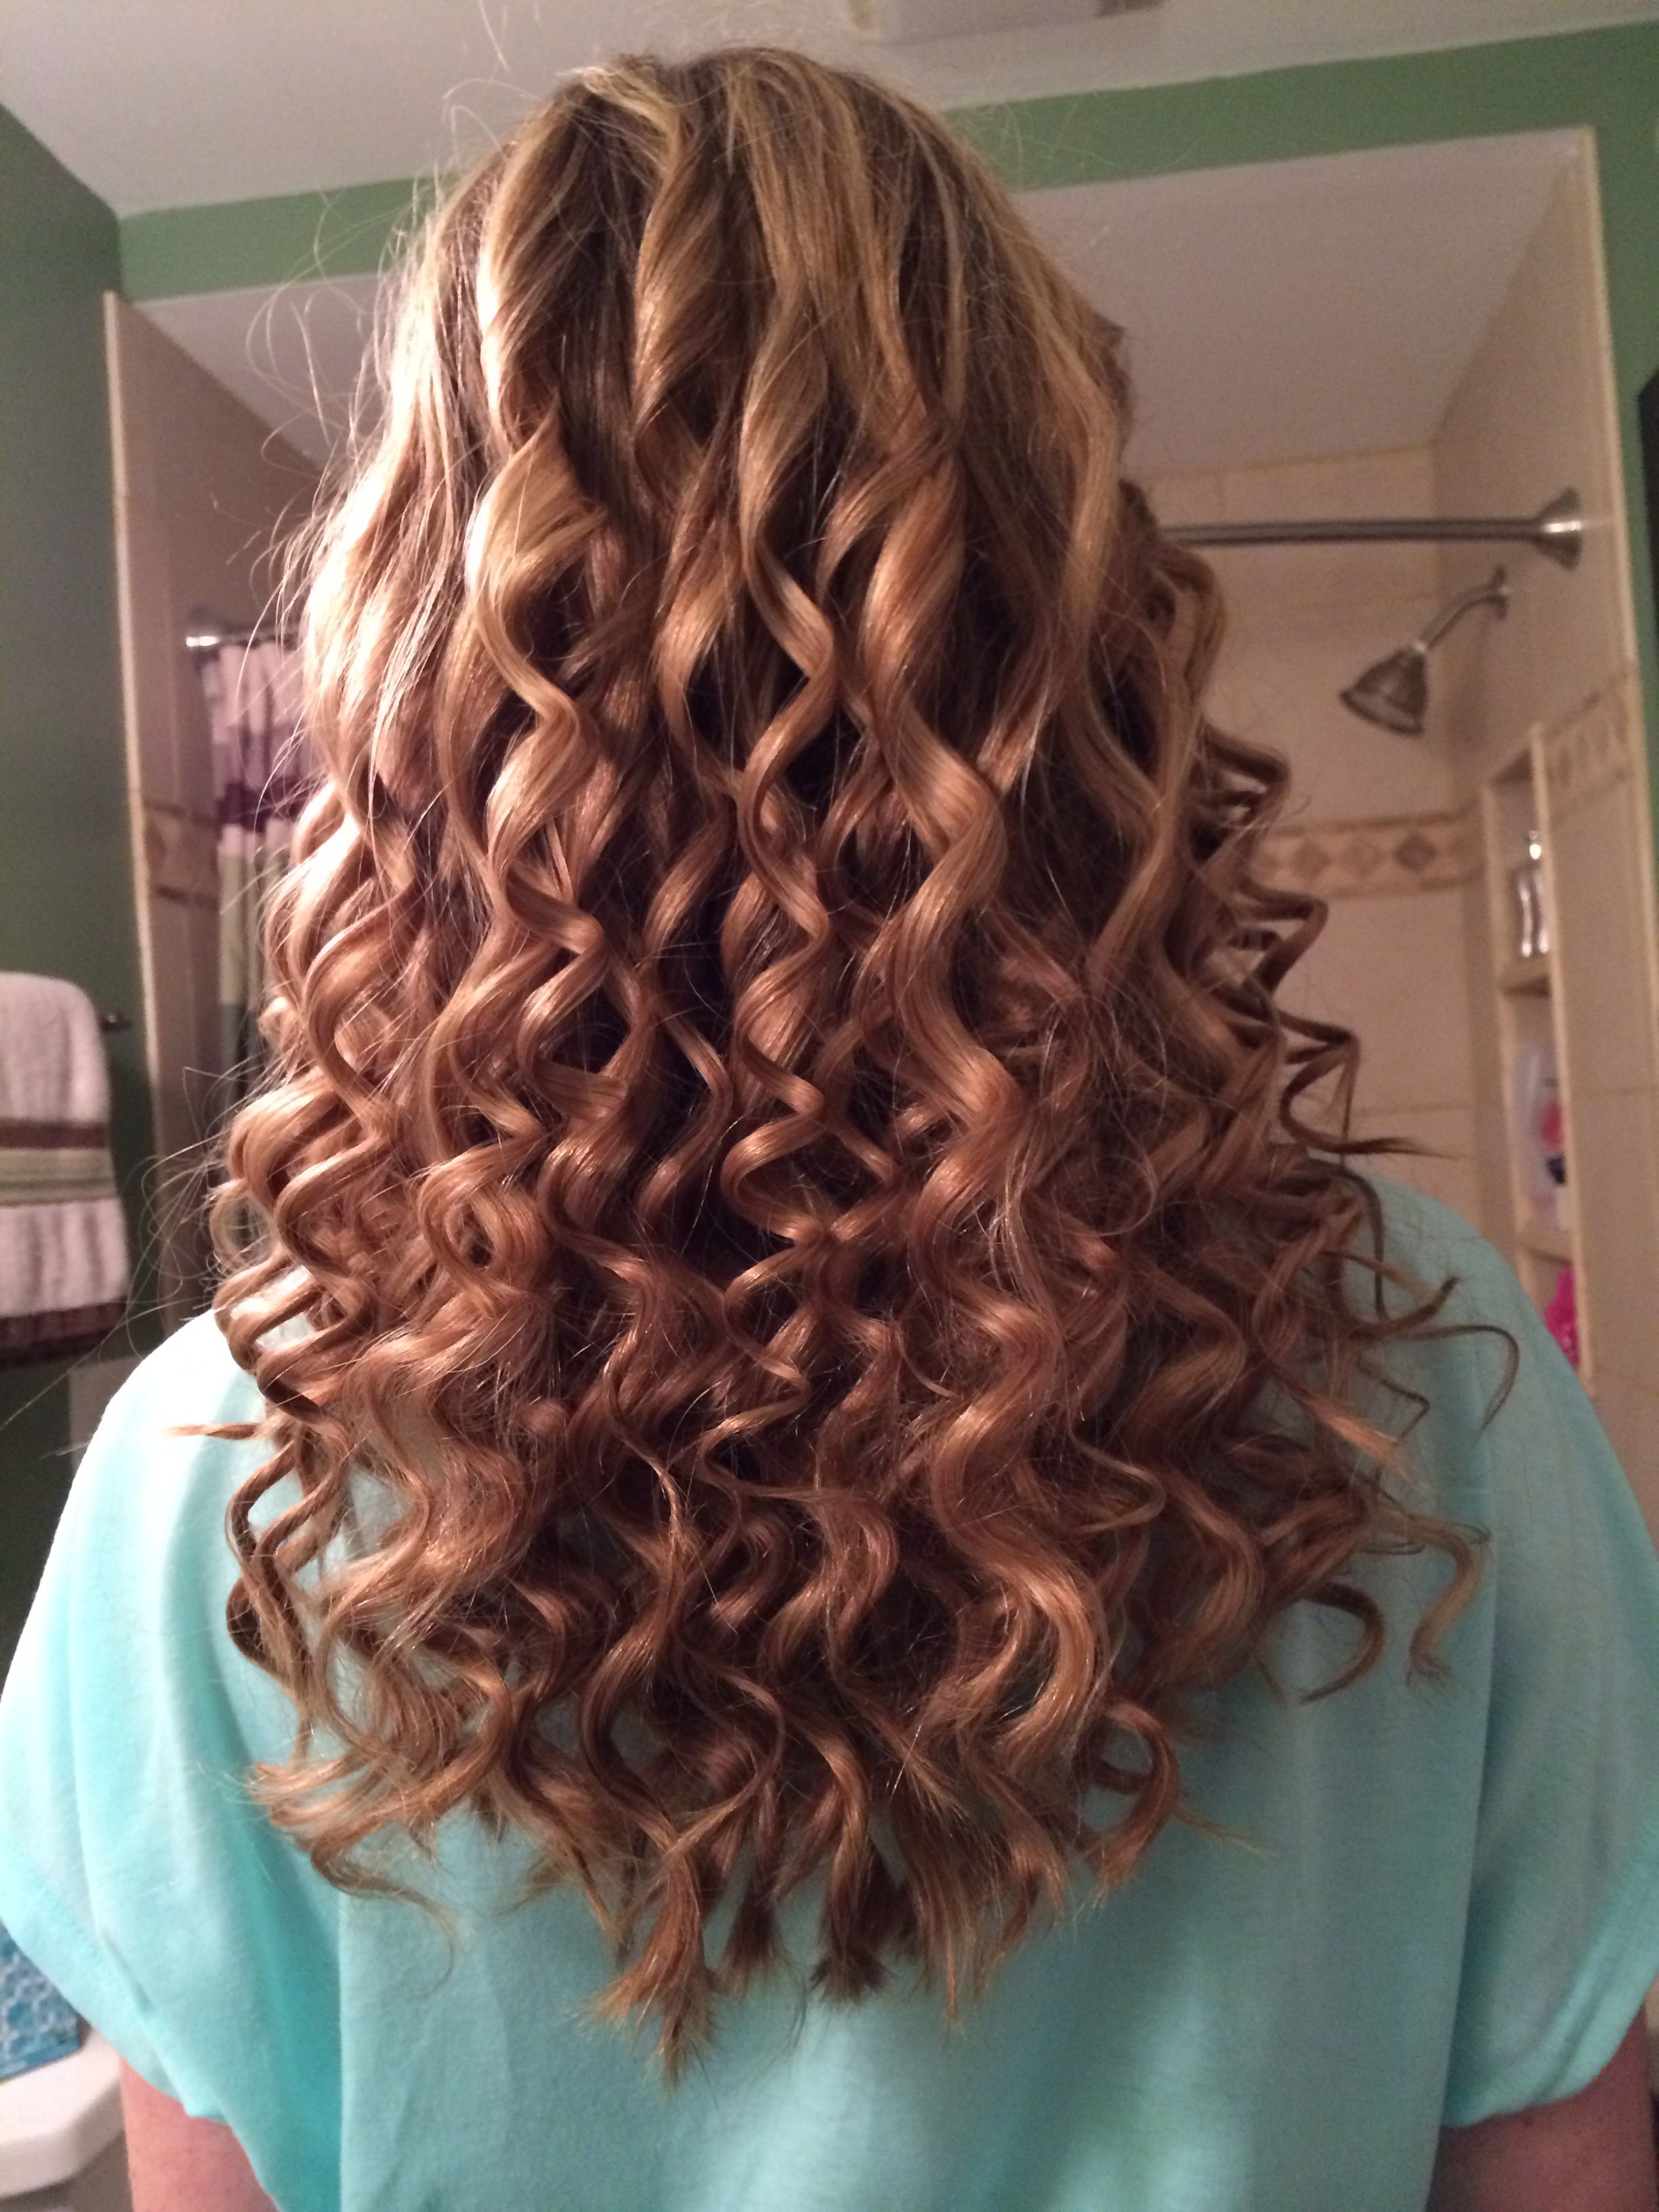 my hair yesterday! tight spiral curls! | cute hair | short